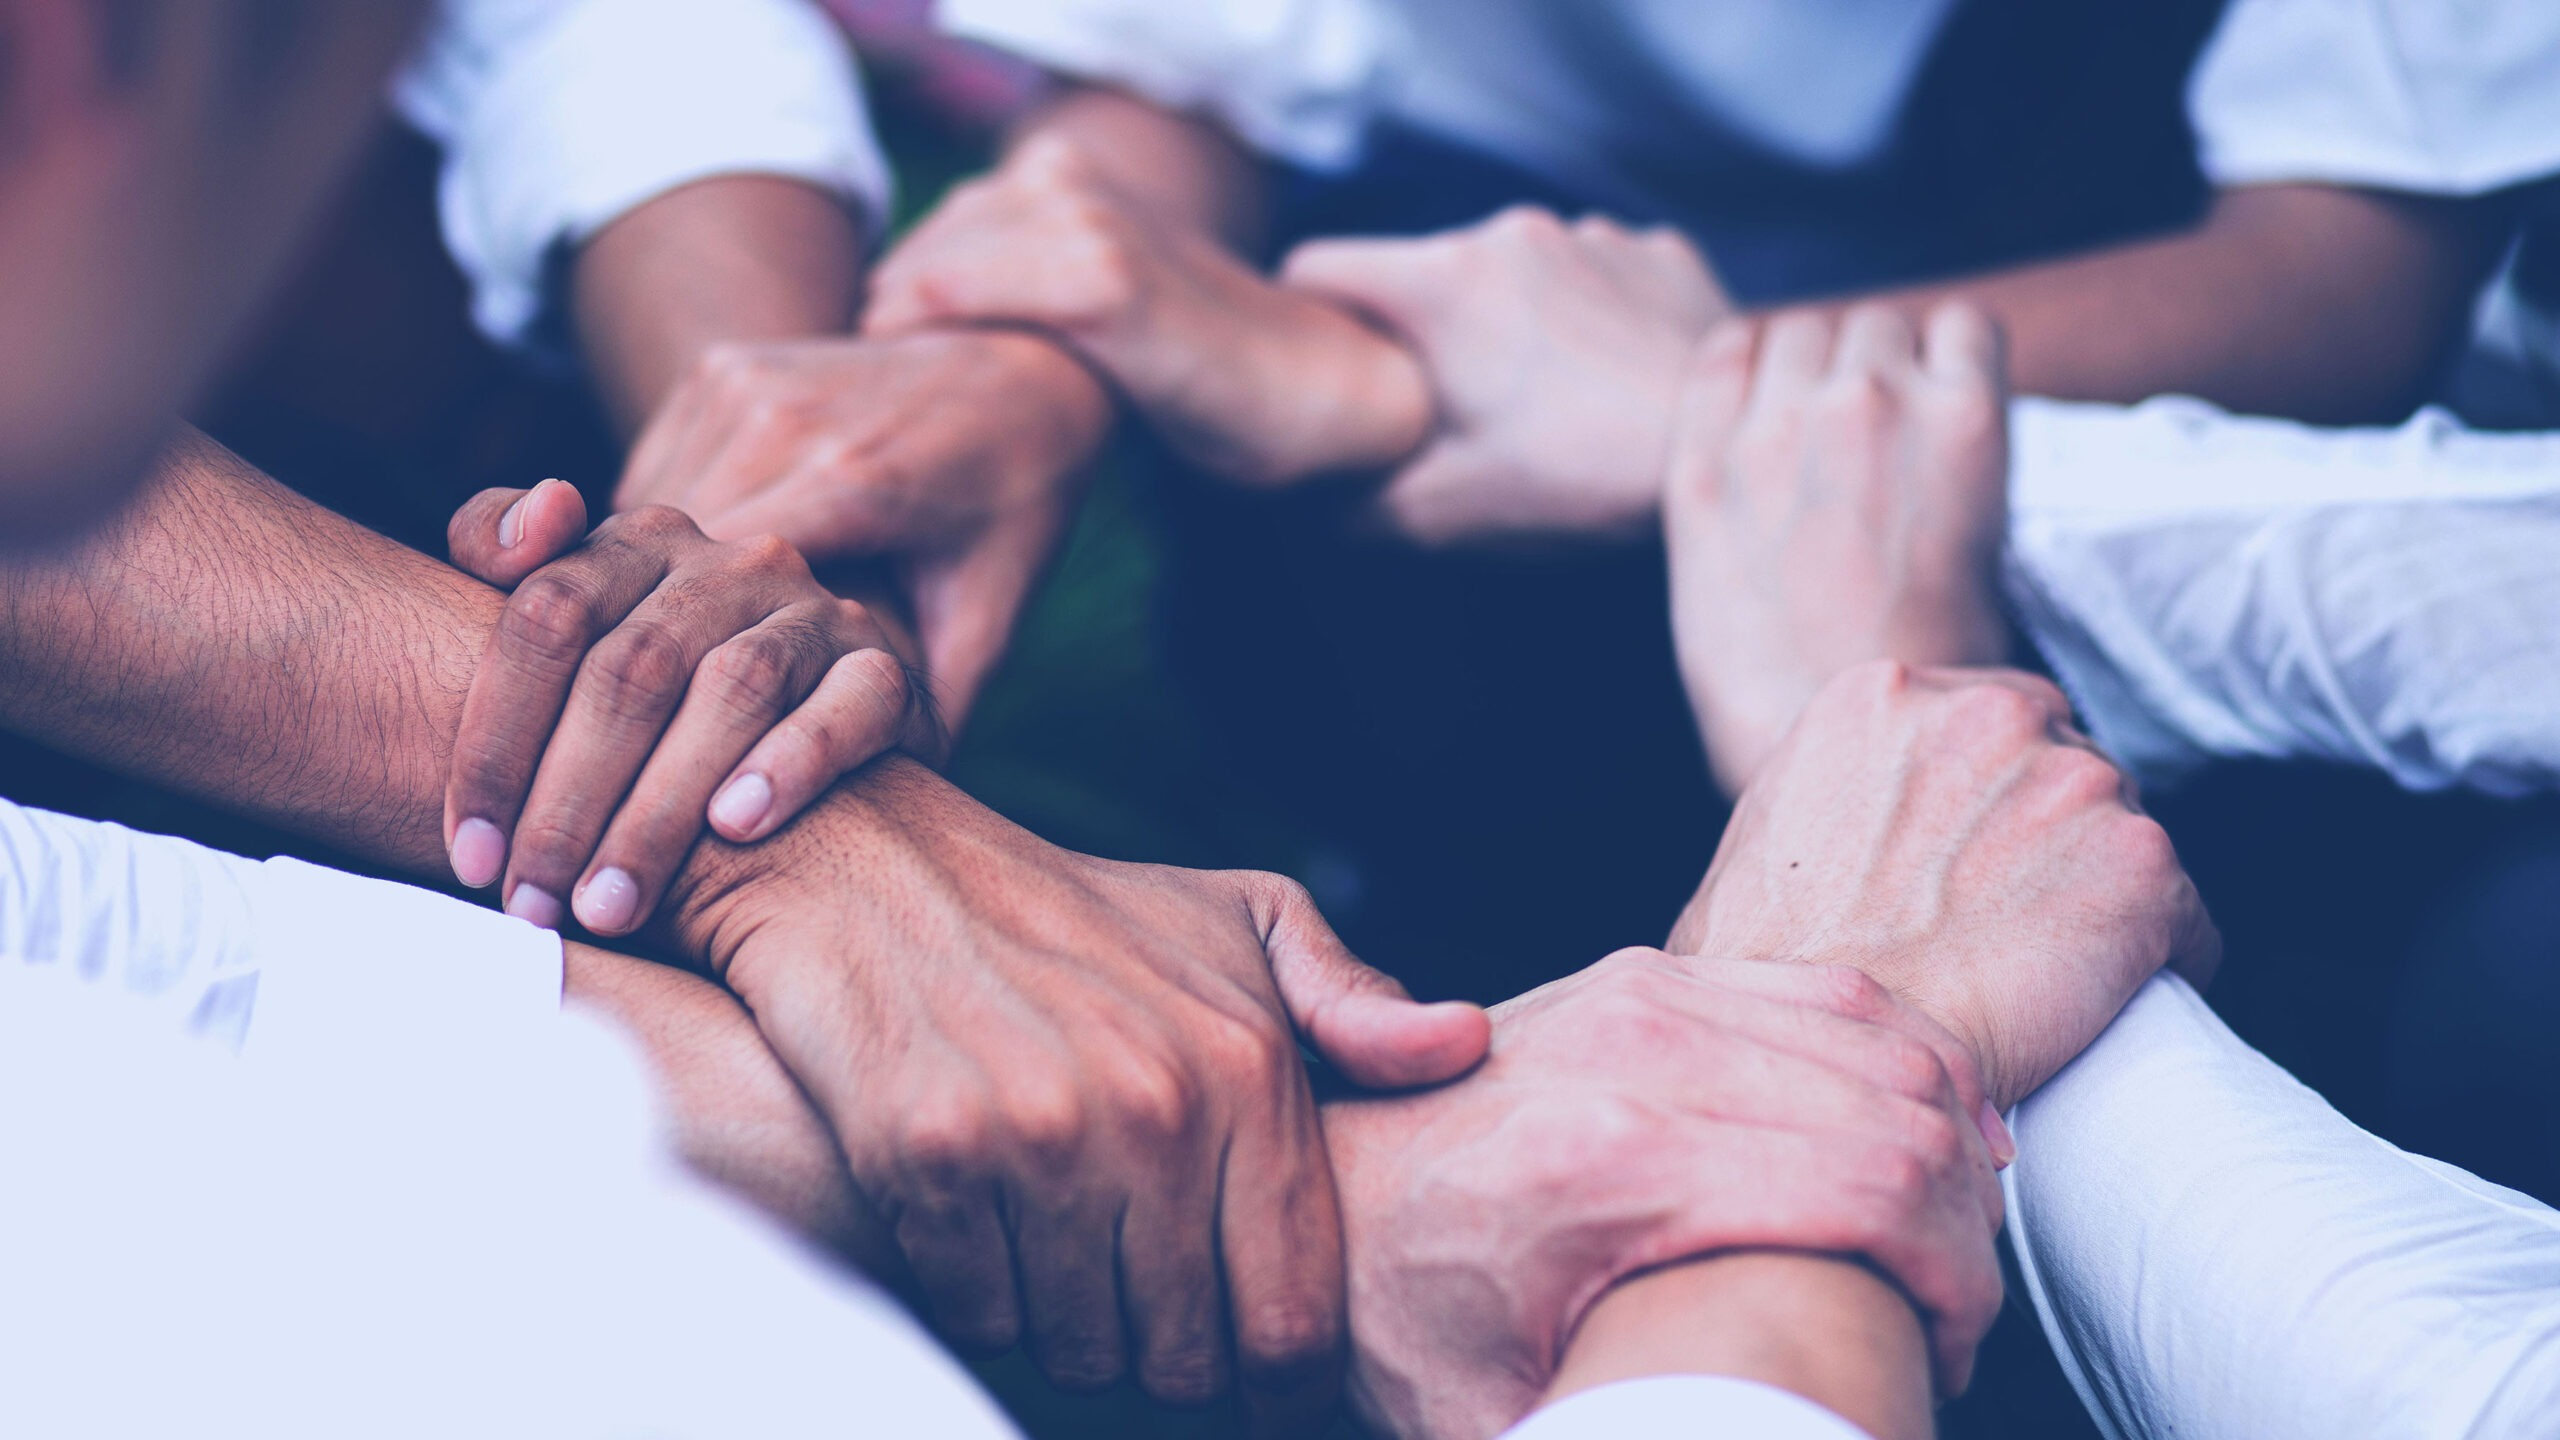 How to Build a Socially Conscious Supply Chain